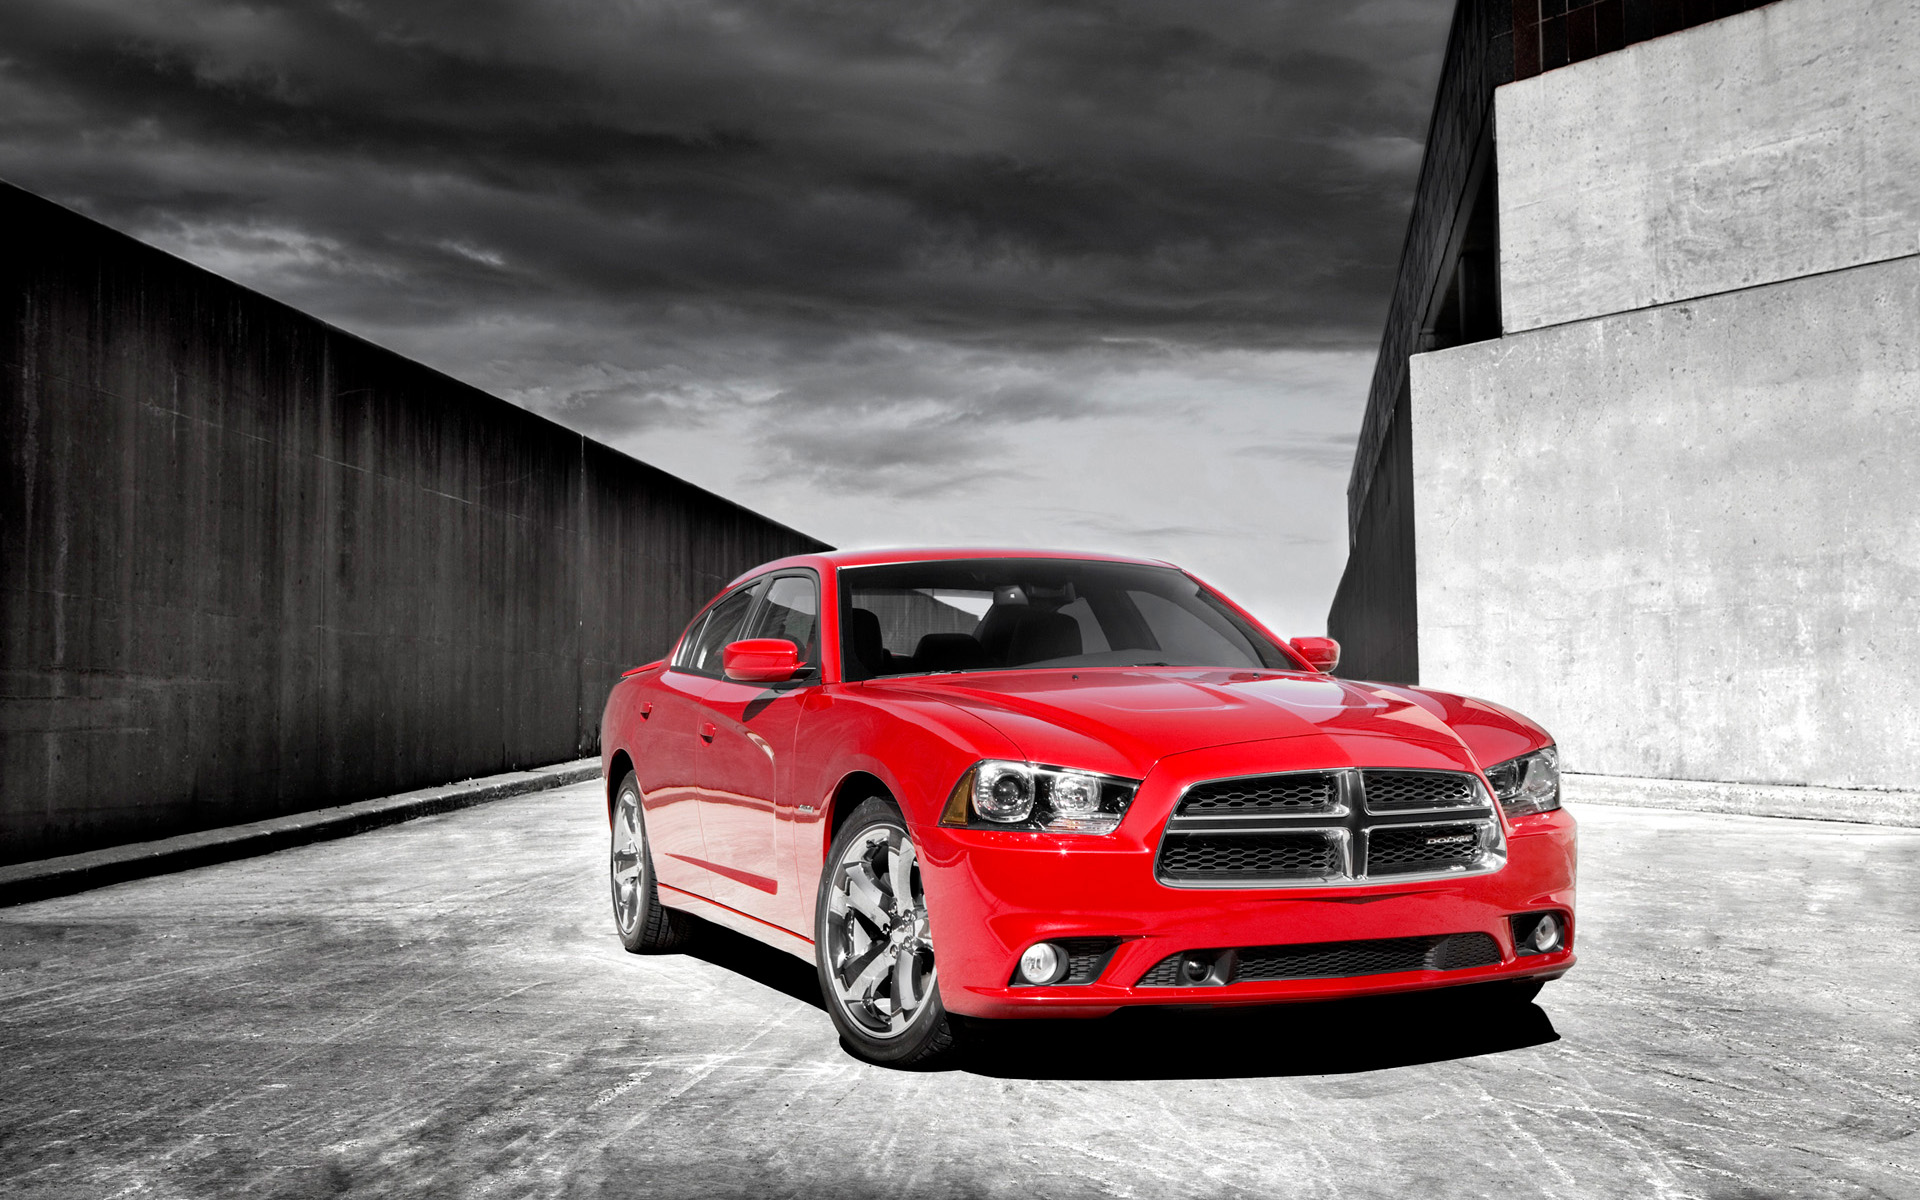 2012 dodge charger rt 2 wallpaper hd car wallpapers id 2584. Black Bedroom Furniture Sets. Home Design Ideas